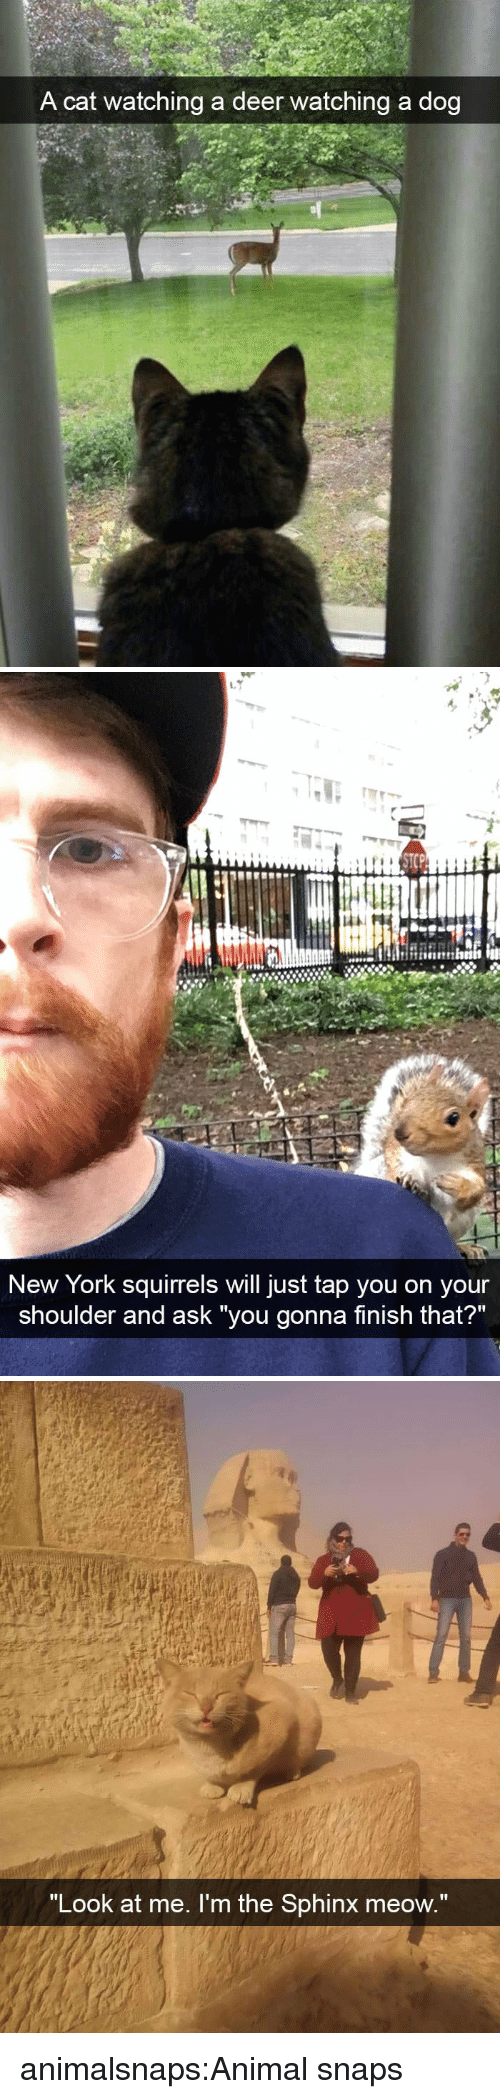 """Deer, New York, and Target: A cat watching a deer watching a dog   STCP  New York squirrels will just tap you on your  shoulder and ask you gonna tinish that?   """"Look at me. I'm the Sphinx meow"""" animalsnaps:Animal snaps"""